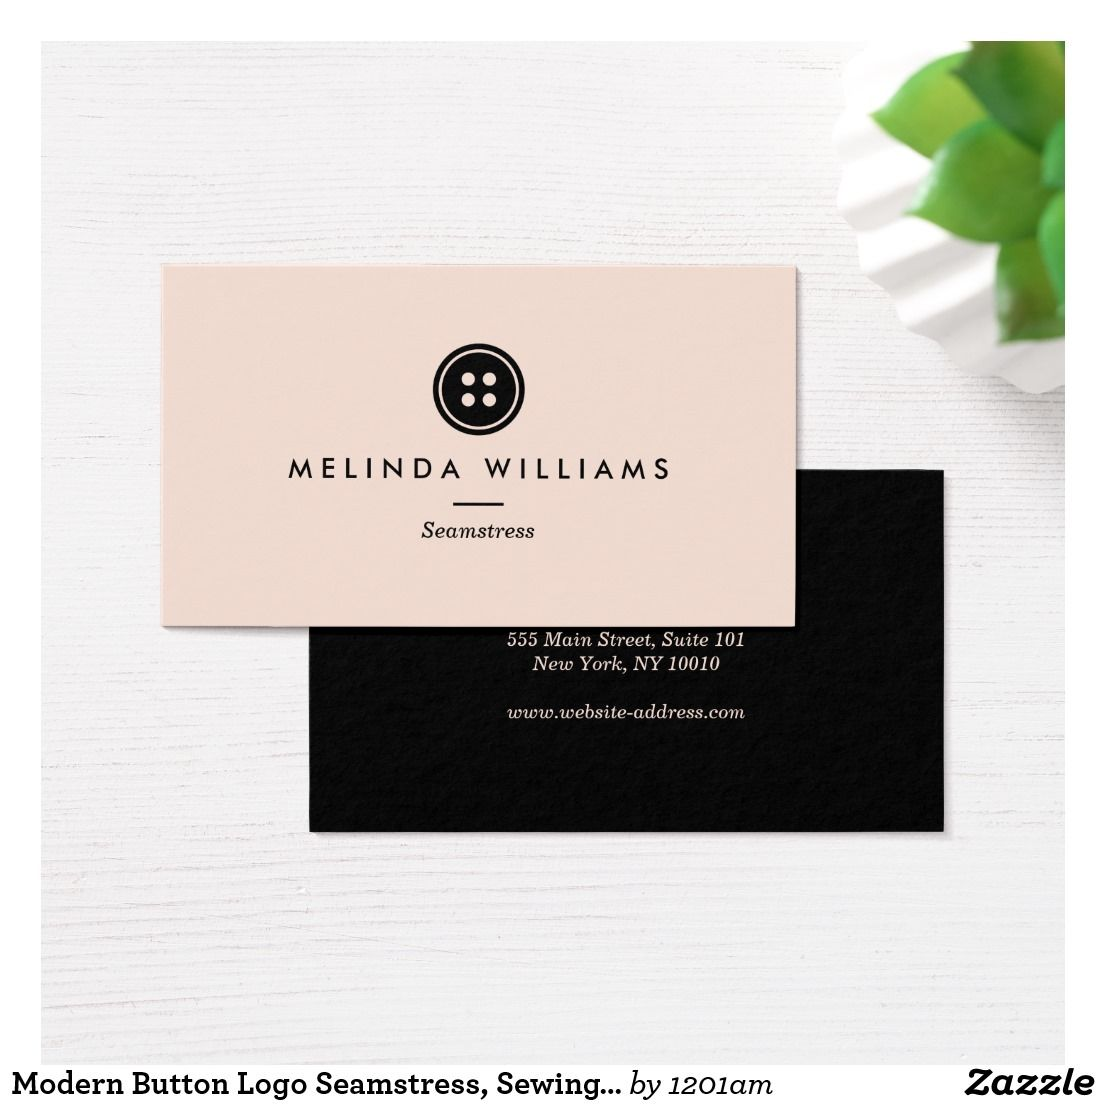 Seamstress business cards image collections free business cards tailor business card gallery free business cards seamstress business cards image collections free business cards modern magicingreecefo Image collections